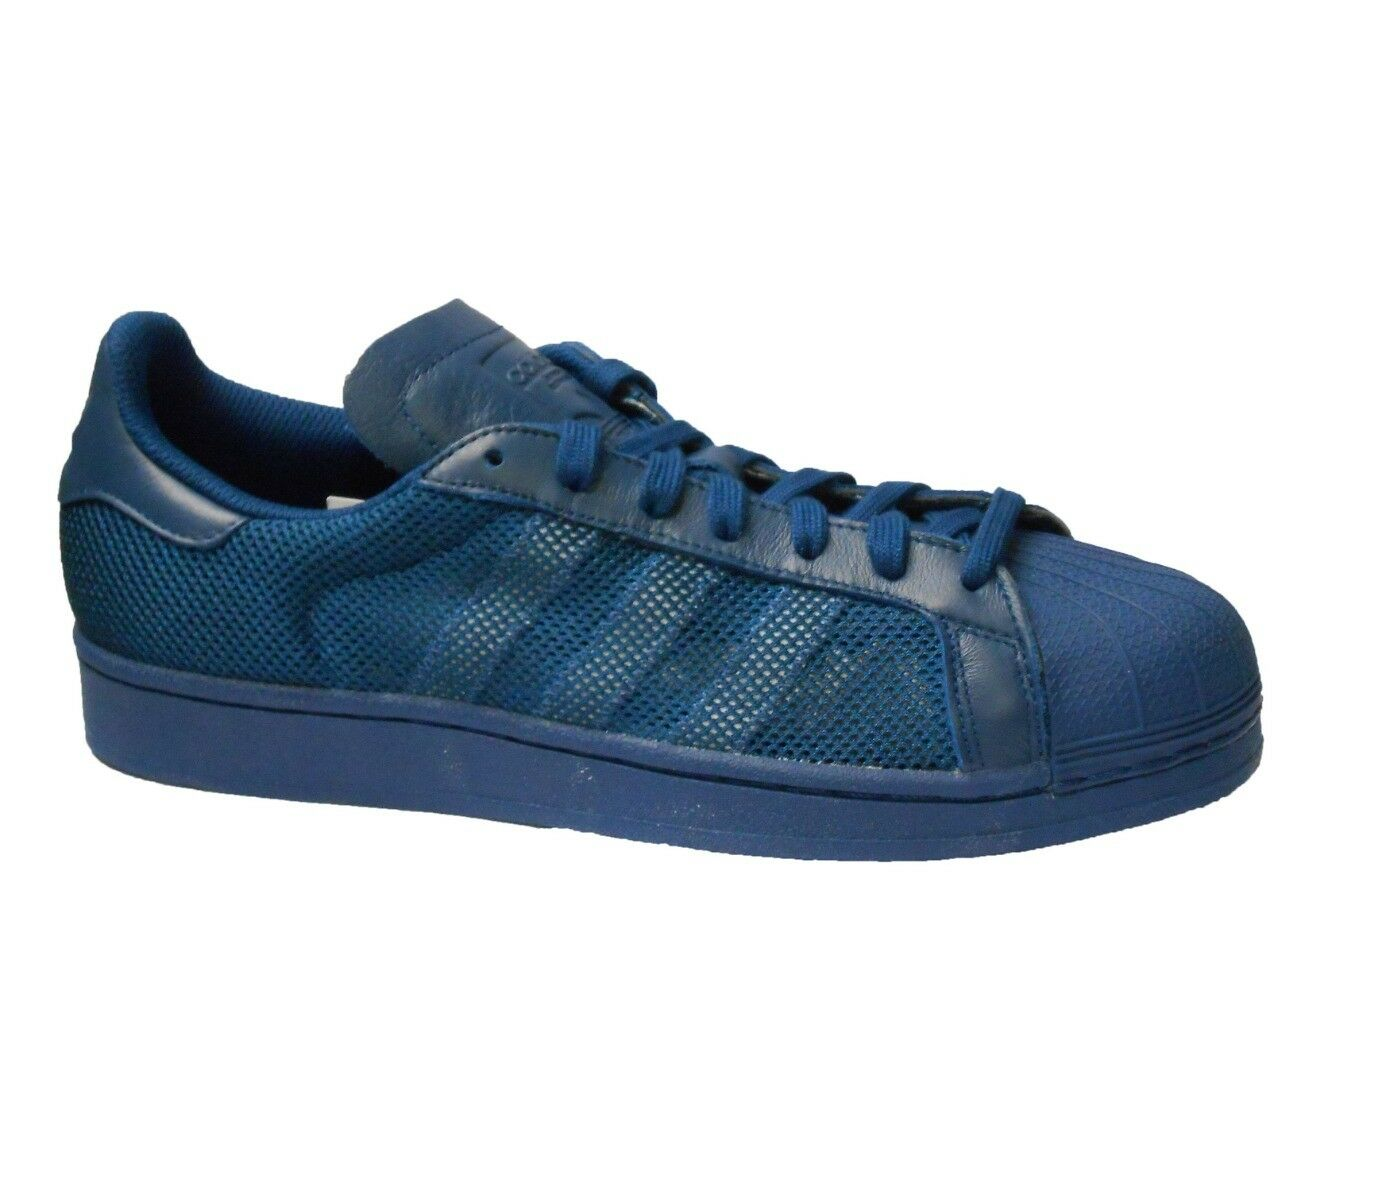 Adidas Superstar Tripple Mens Trainer shoes Tecink Size 6.5 - 11.5 New RRP